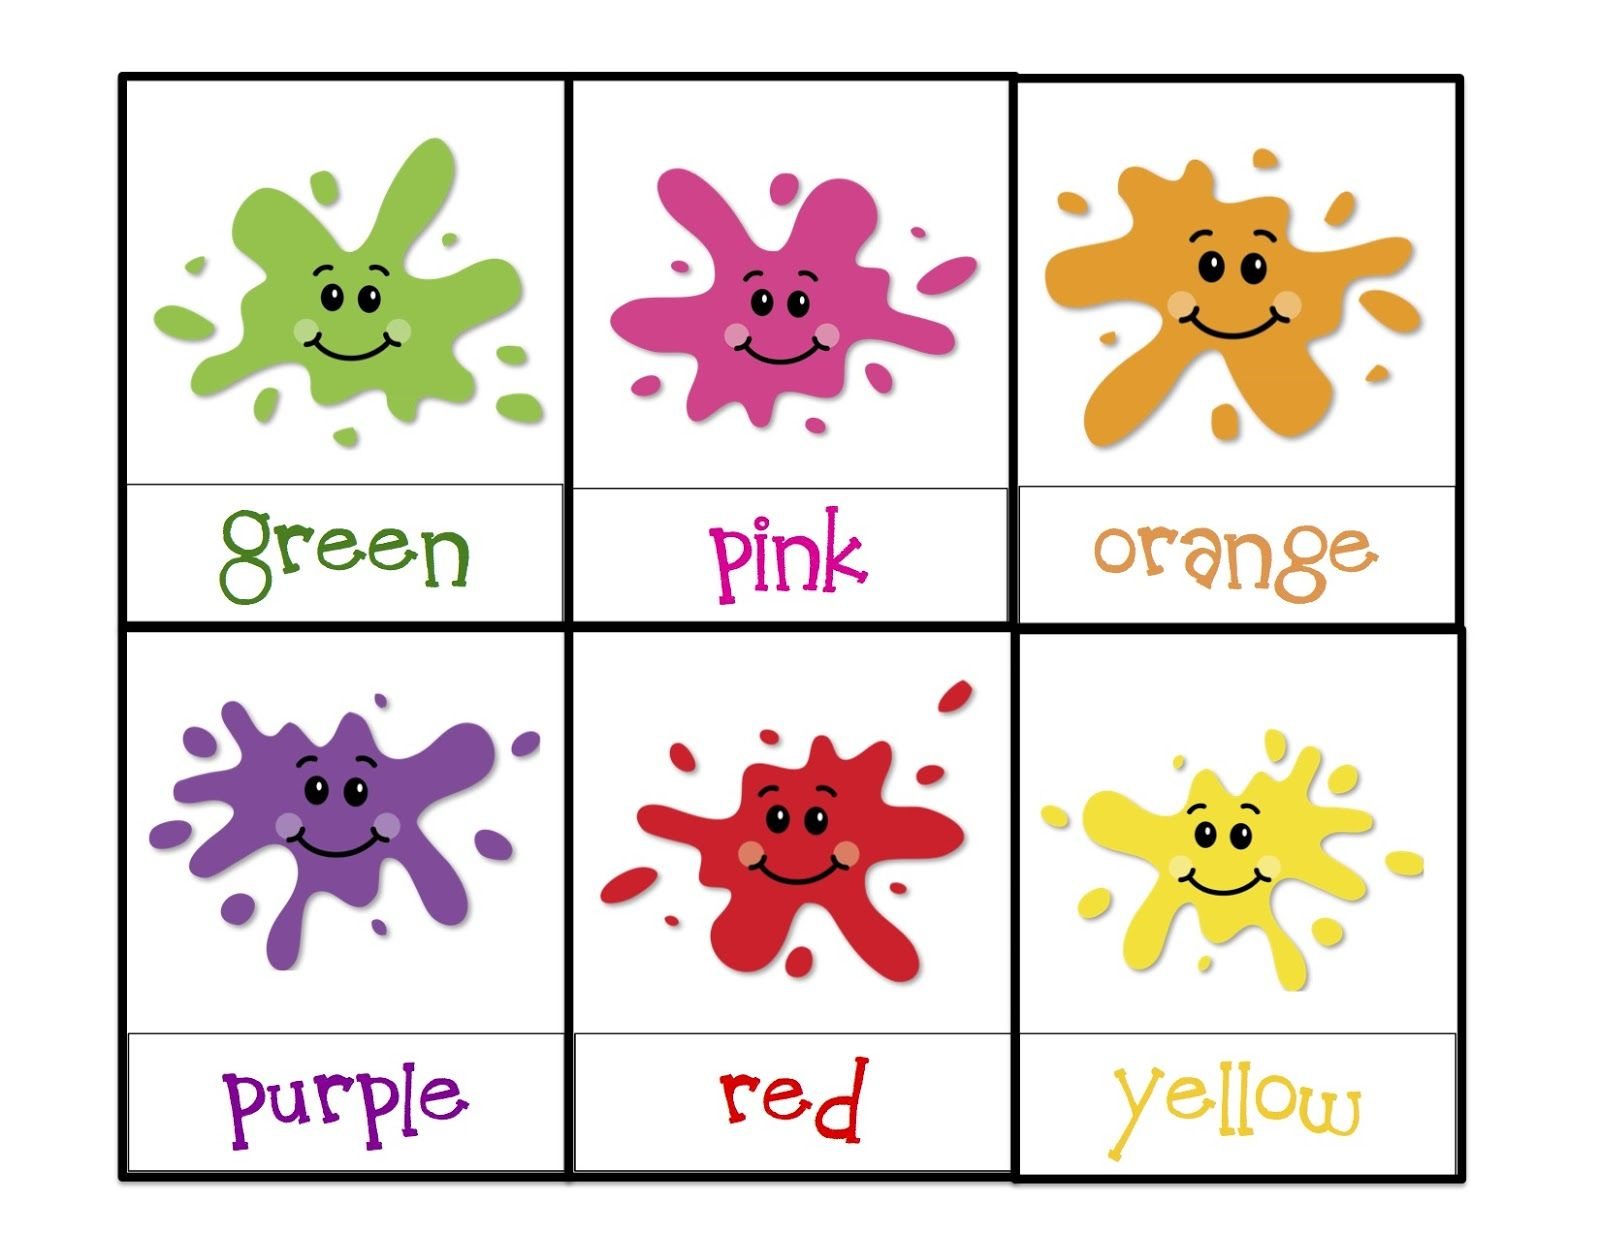 toddler color learning printables learning colors printable - Printable Color